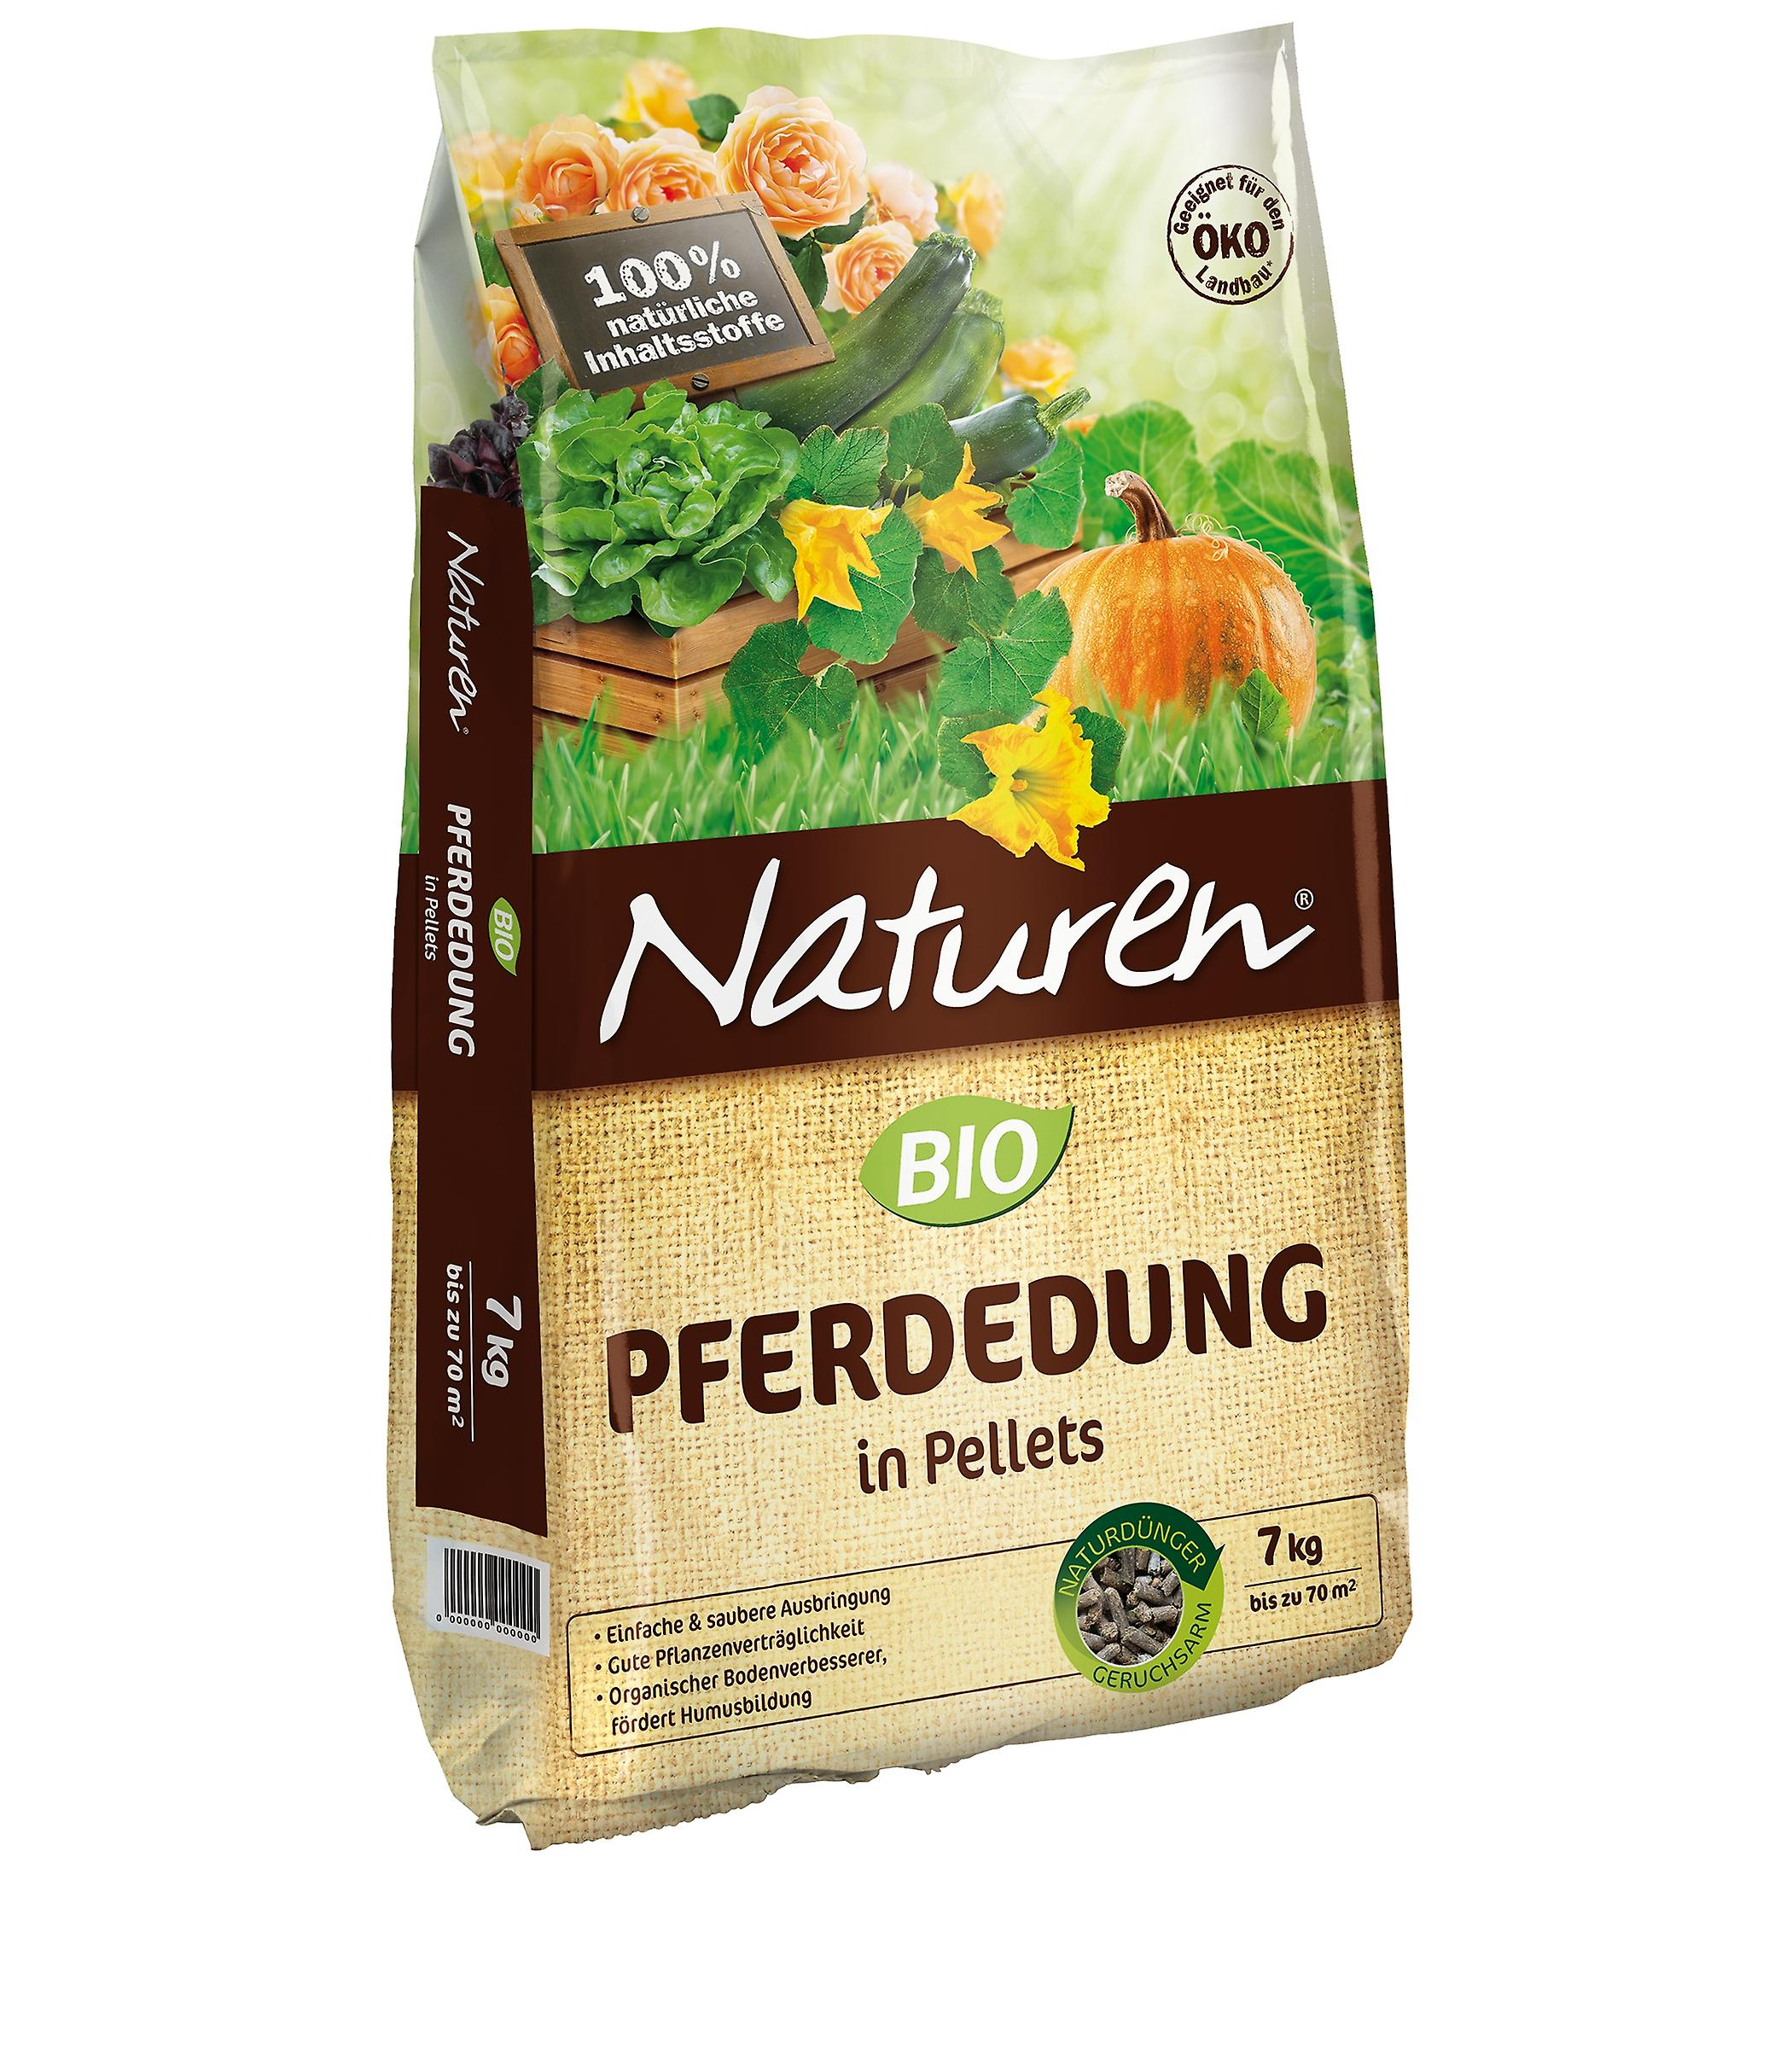 SUBSTRAL® Naturen®  BIO Pferdedung, 7 kg